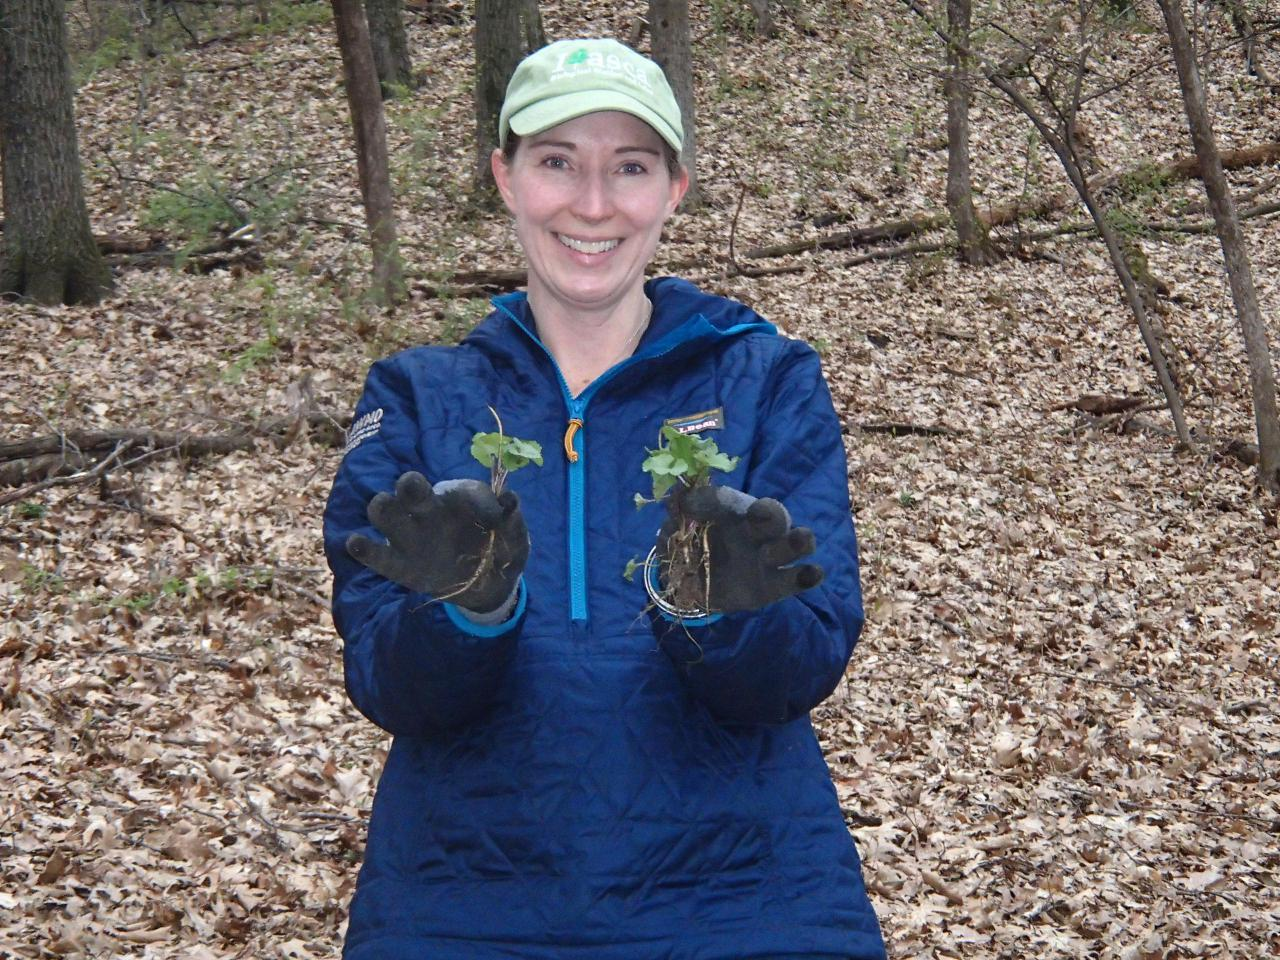 A volunteer pulls small garlic mustard plants